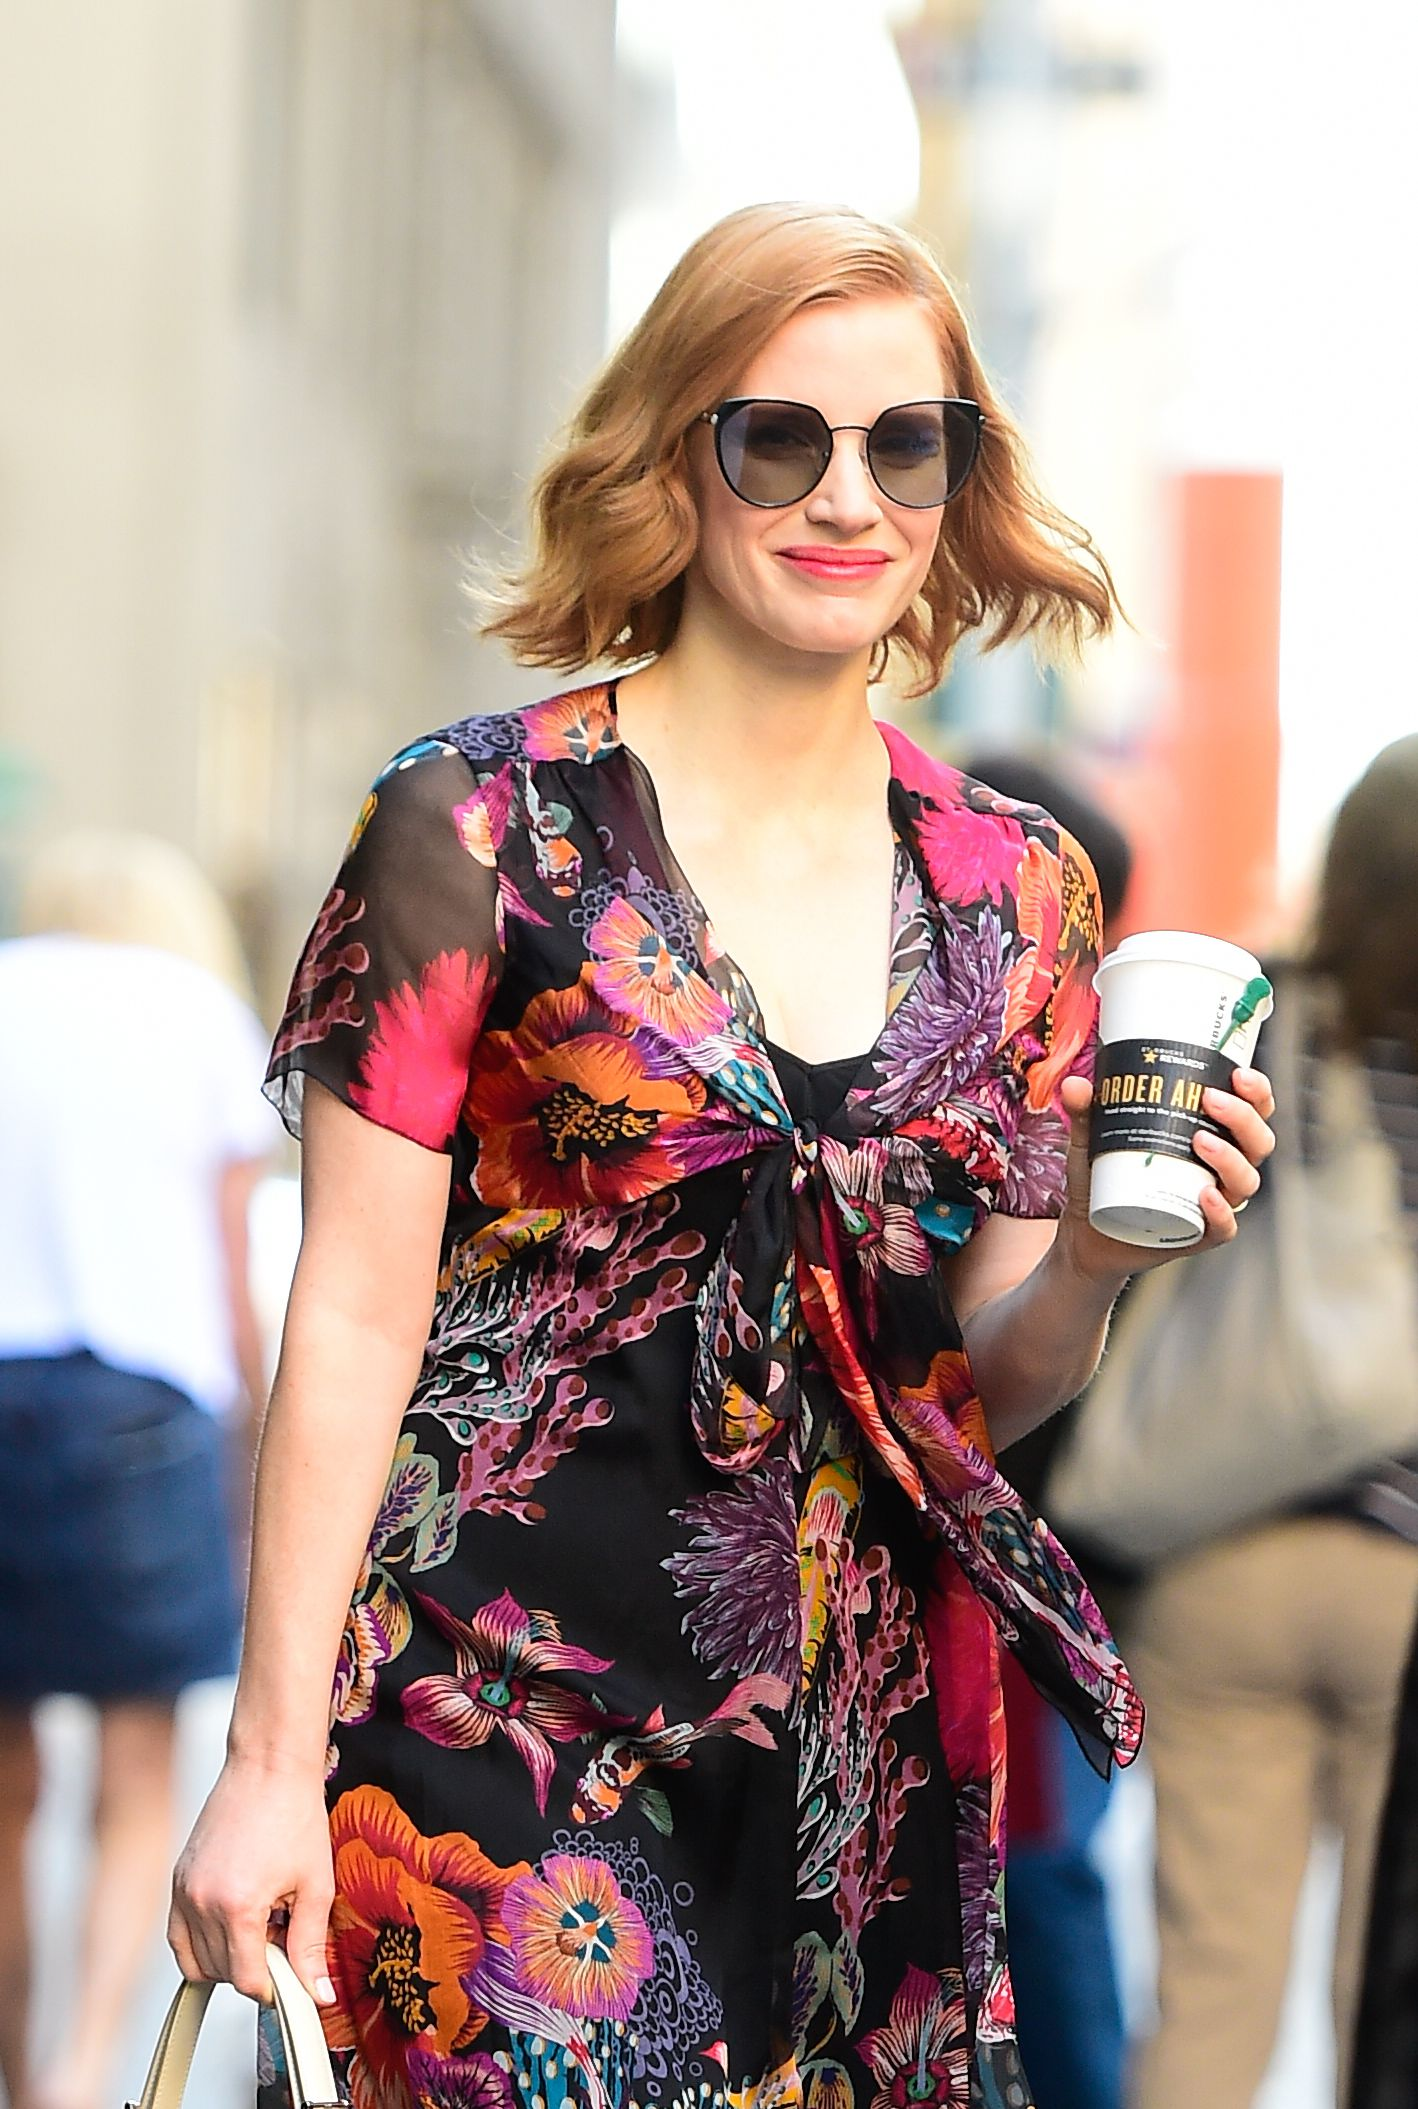 4182198a372 Actress Jessica Chastain was spotted on the streets of New York City  wearing the new Longchamp sunglasses